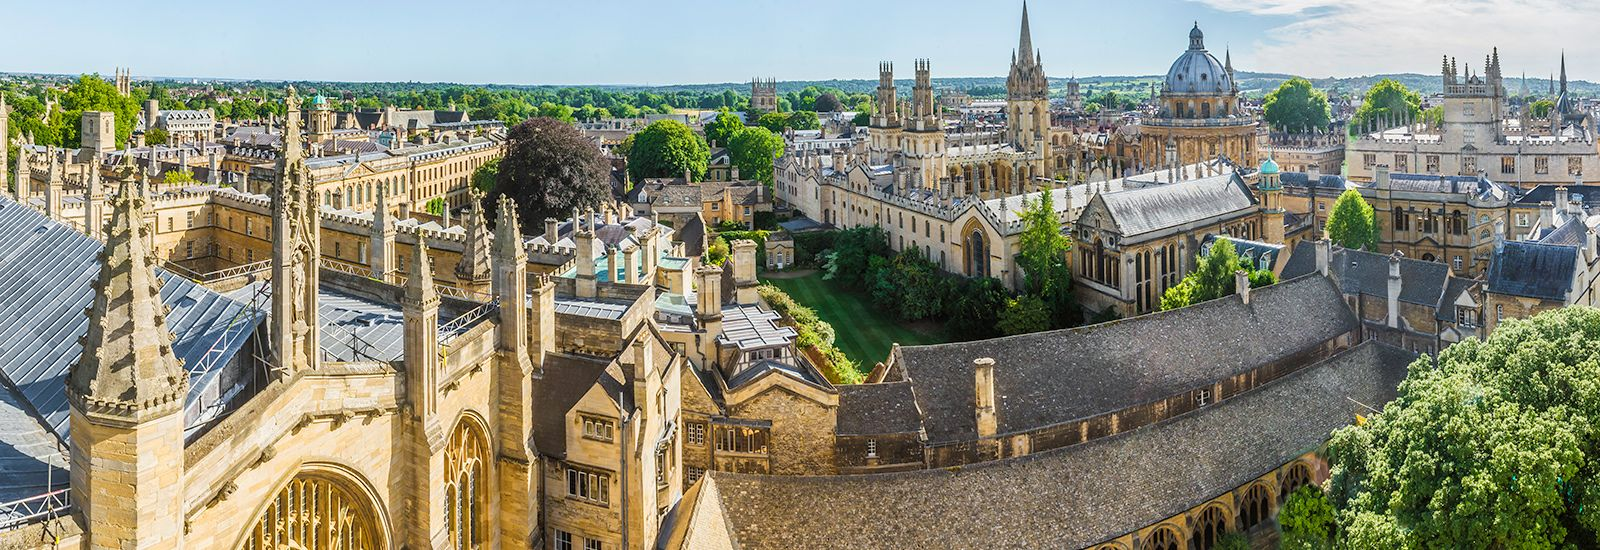 Oxford skyline, wide angle